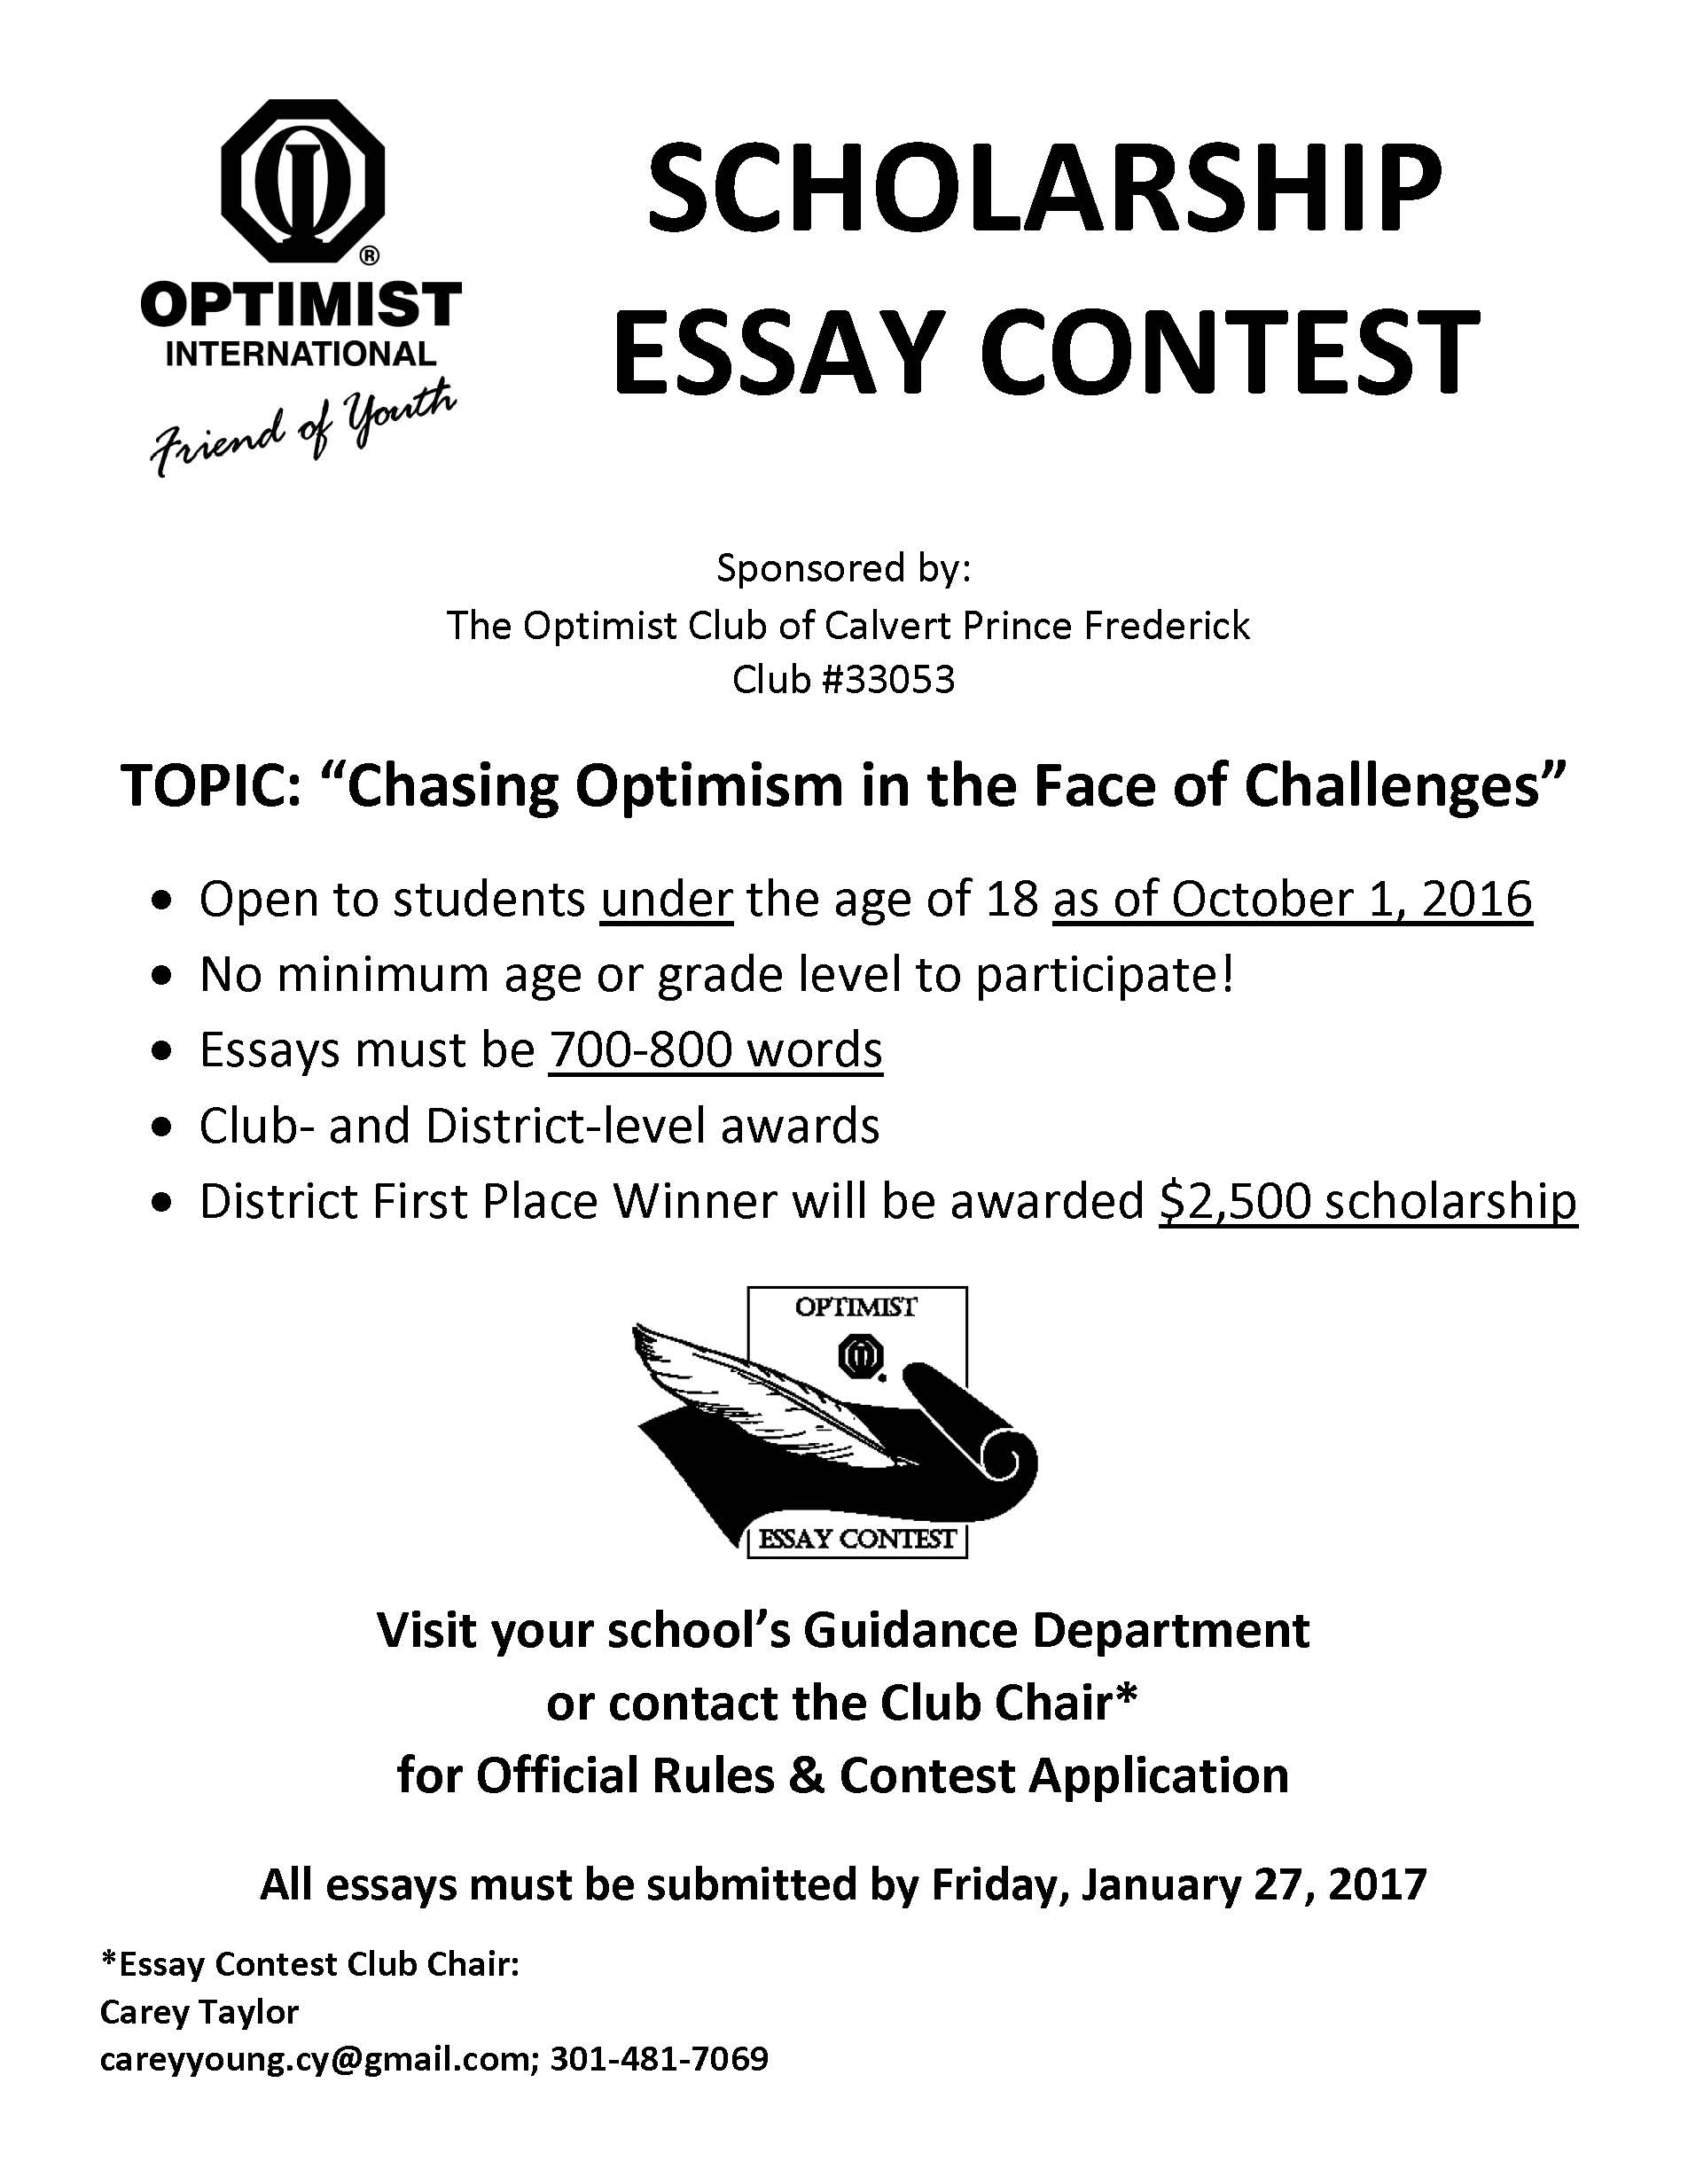 essay contests scholarships 2011 The optimist international essay contest is open to youth under the age of 19 as  of december 31, 2010 applicants  scholarship spotlight  june 08, 2011.